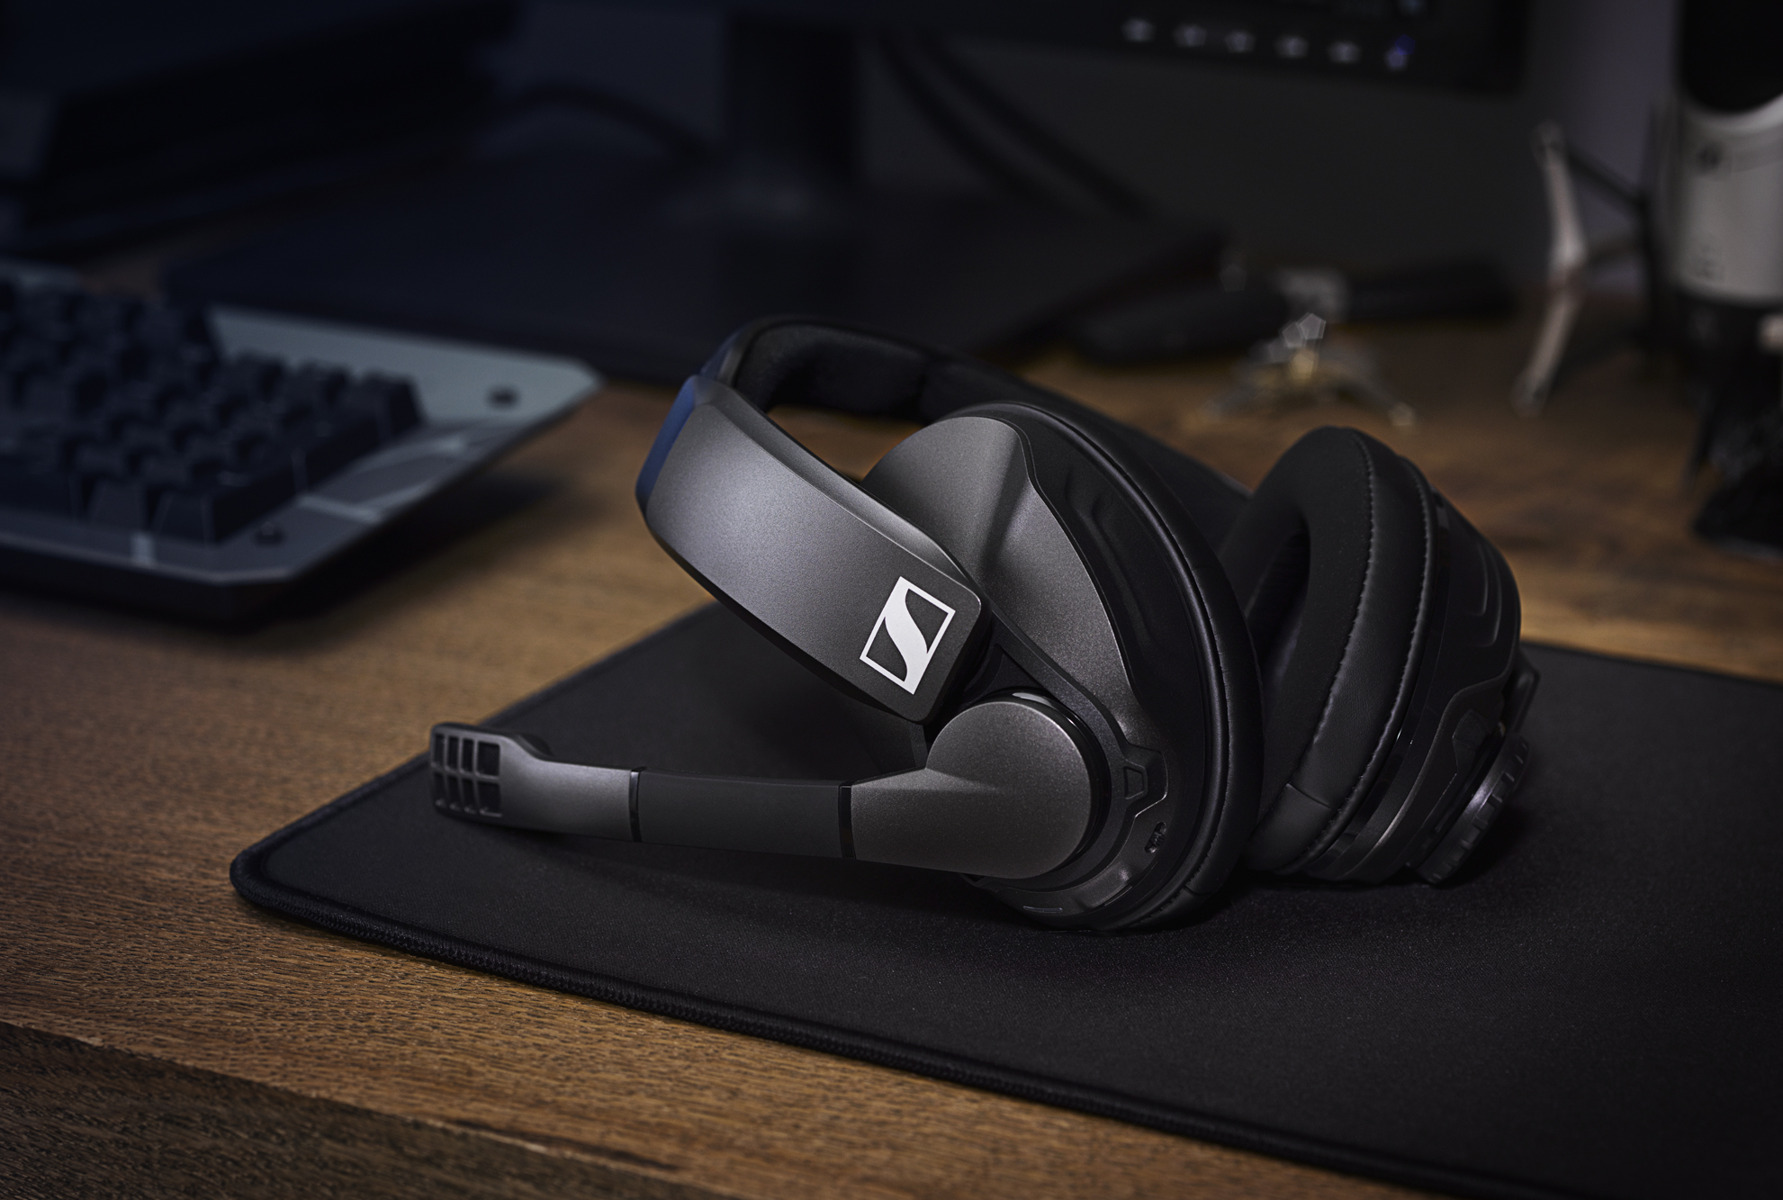 UP TO 100 HOURS OF WIRELESS GAMING